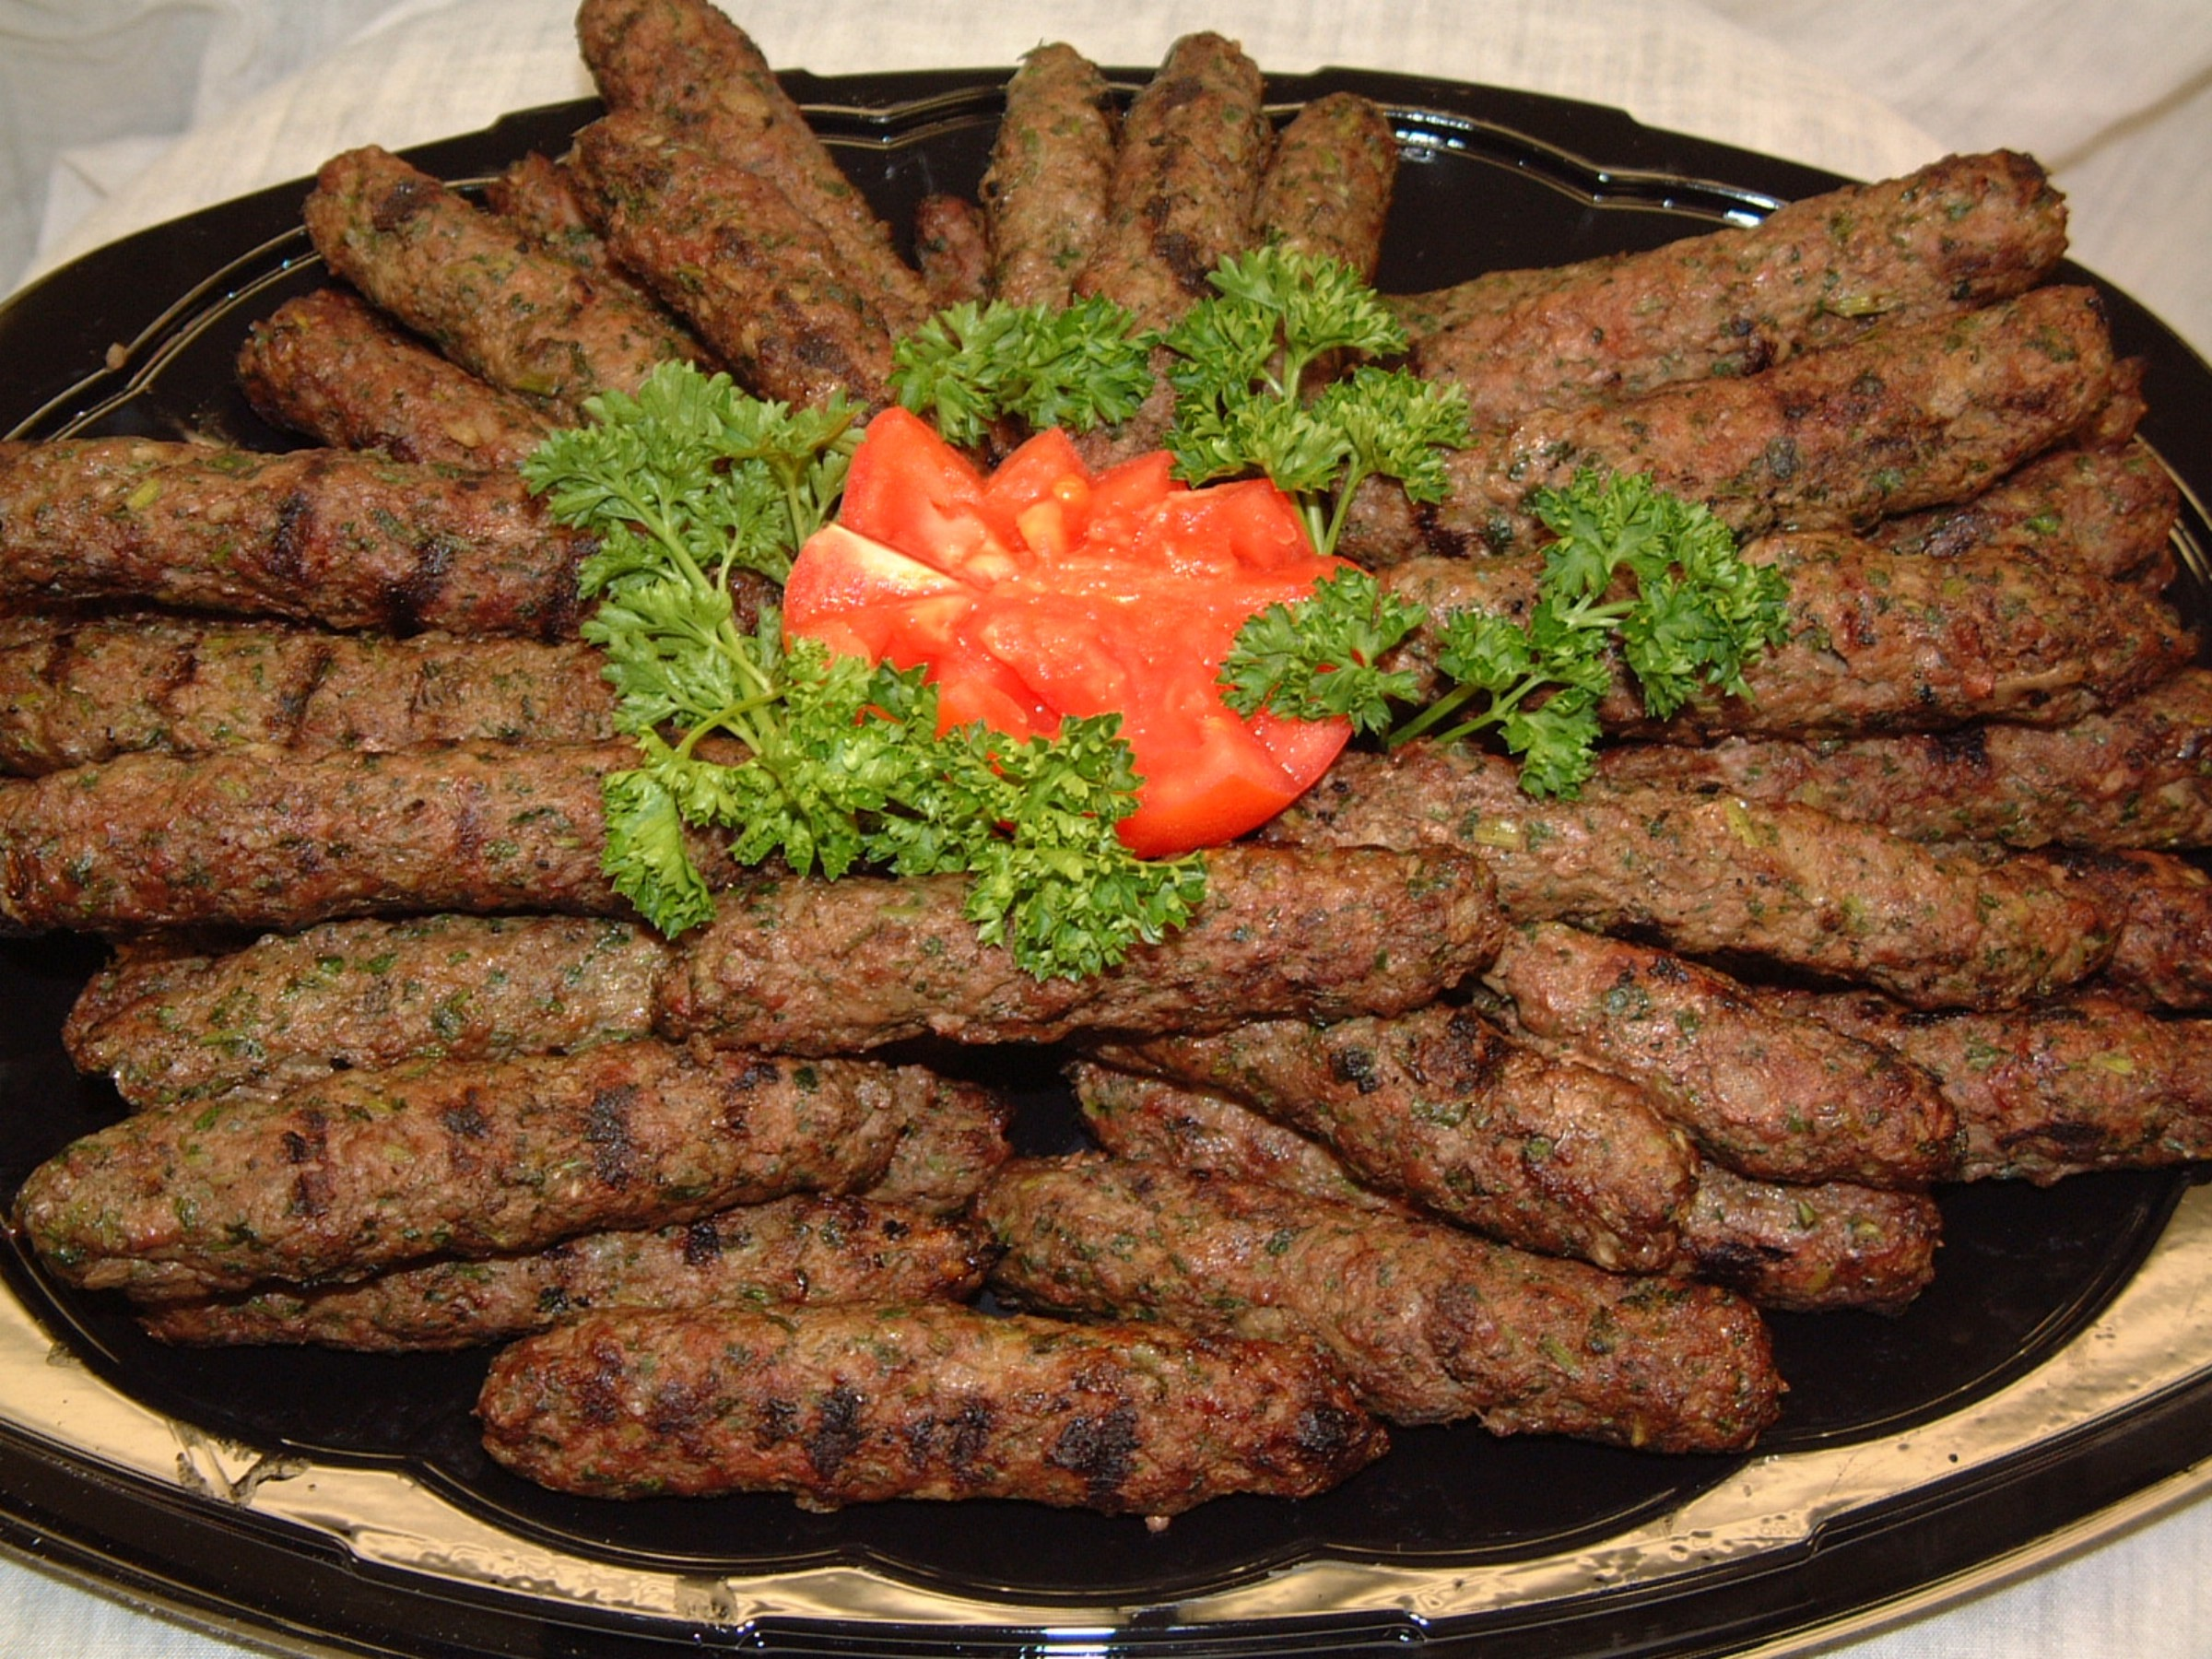 That's the Kafta, it's one of best foods ever, it's a kind of meat